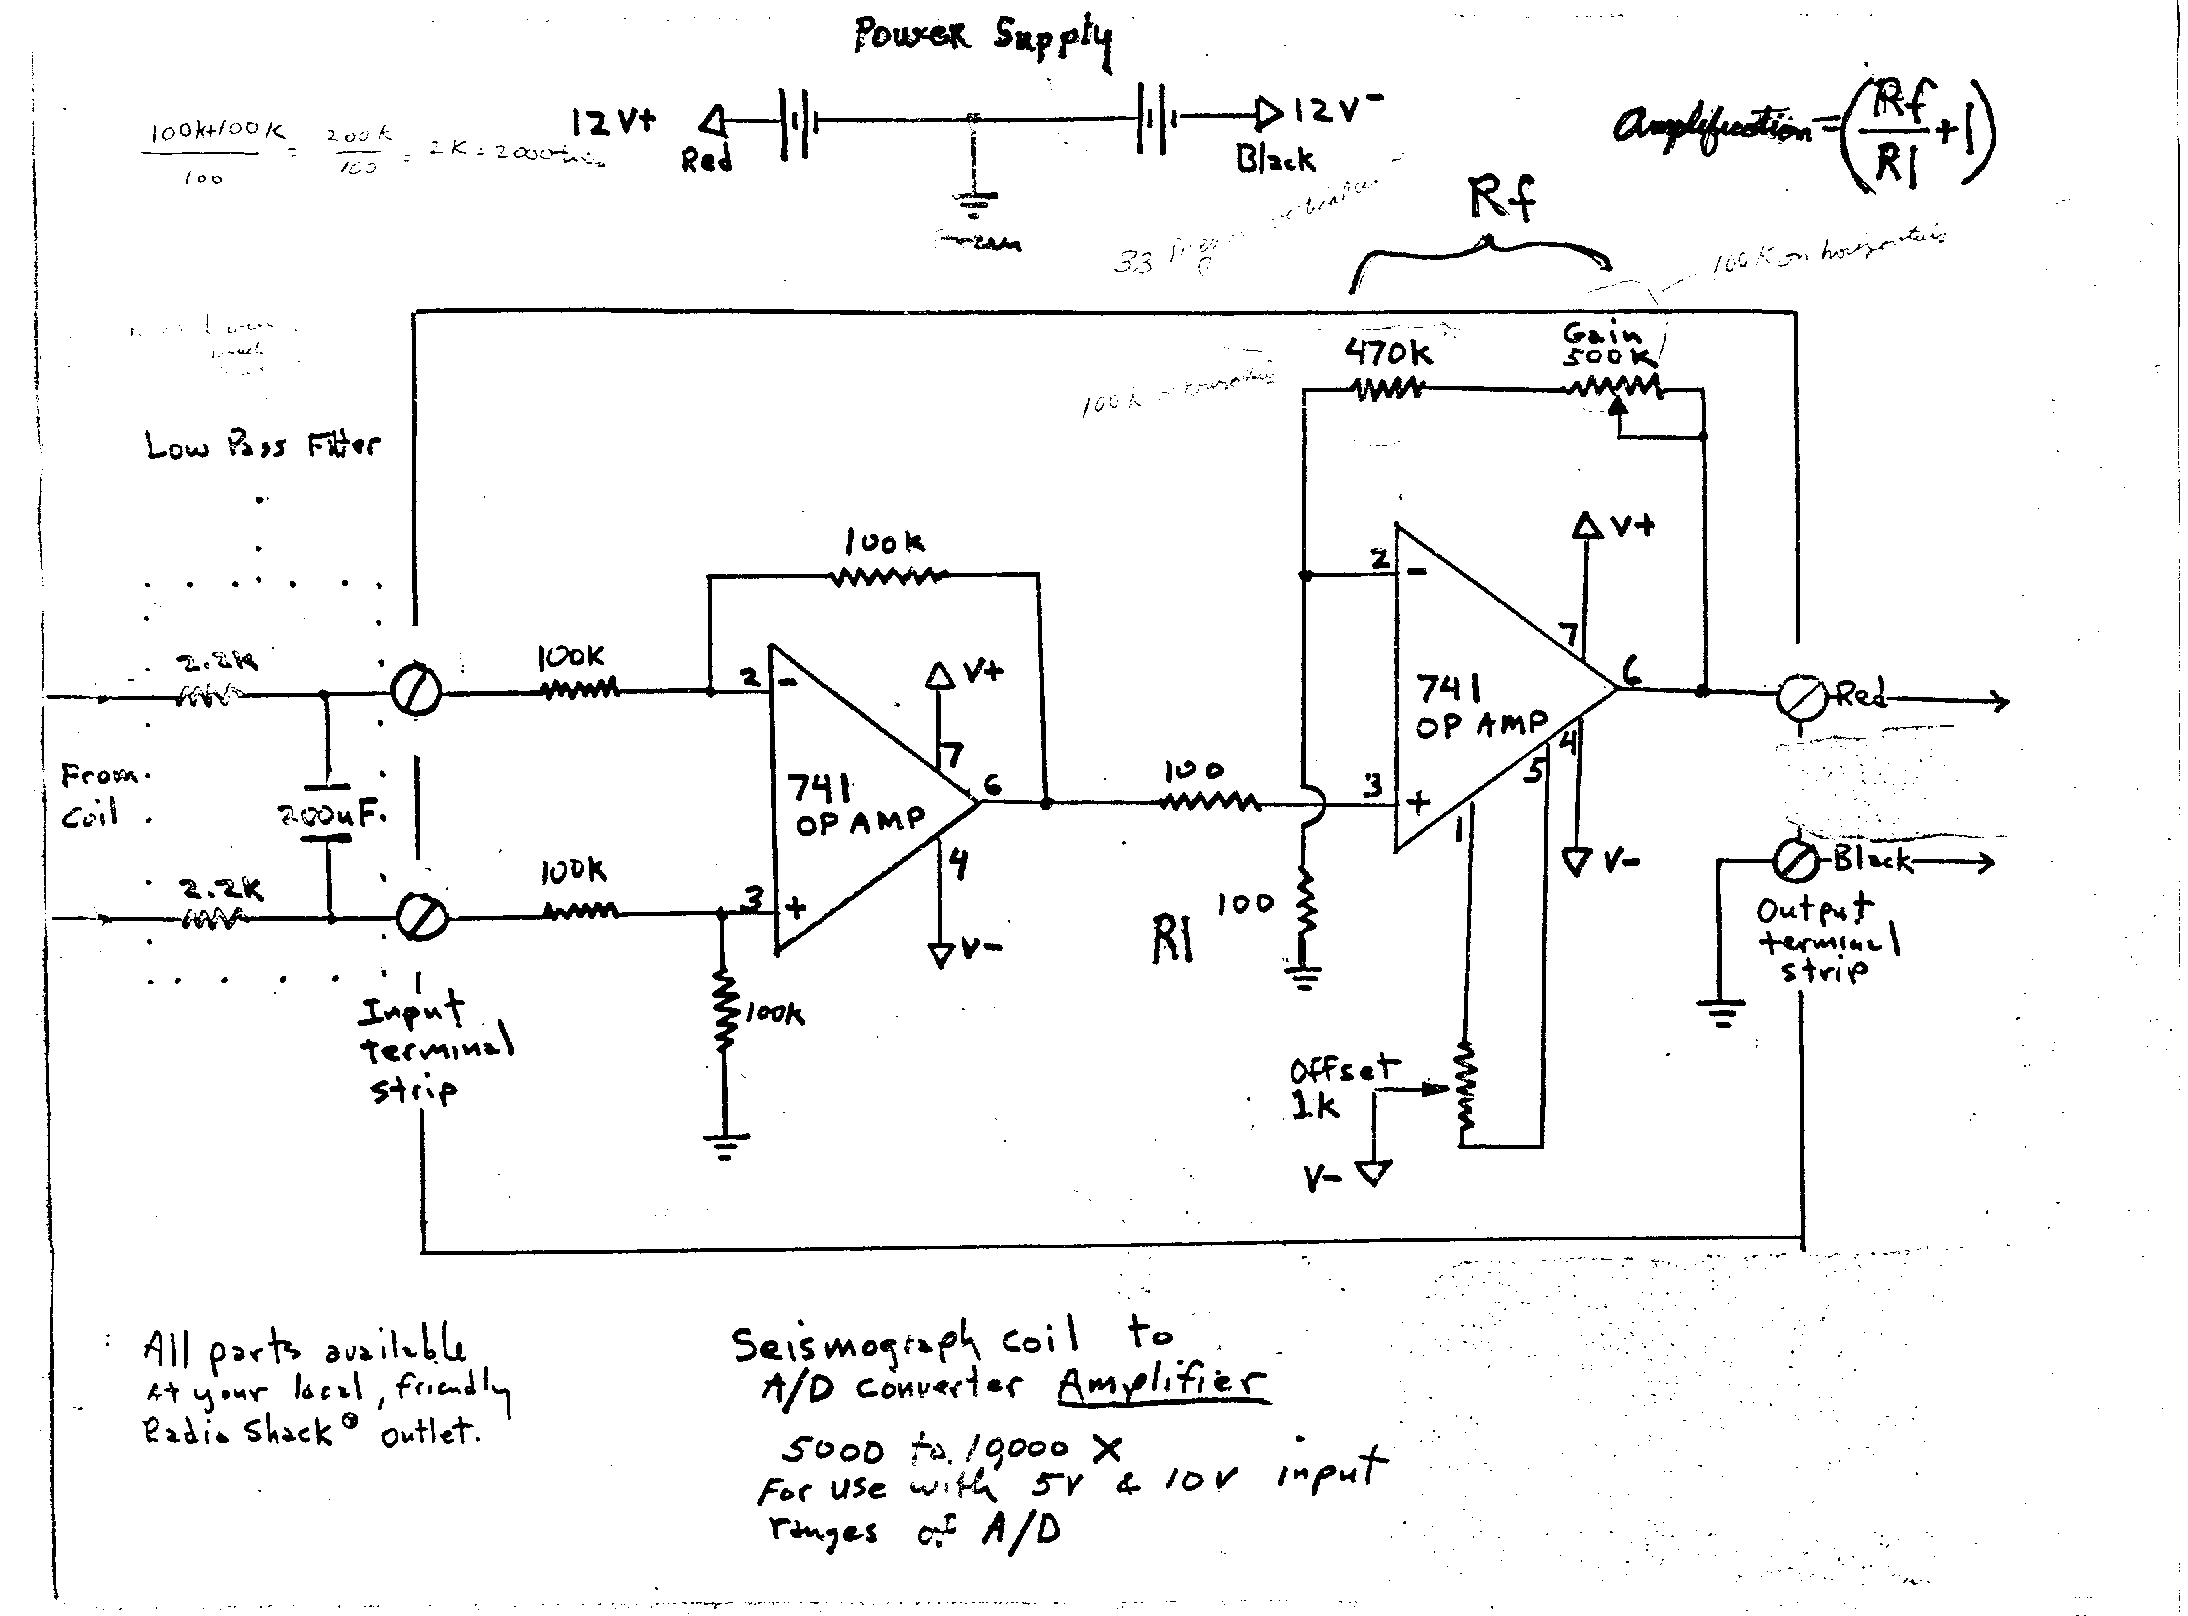 1 Lehman Seismograph Murmurs From The Earth Types Of Op Amp Circuits Times By A Simple Amplifier Circuit Which I Found On Internet Thanks To Dr Joseph Gerencher Moravian College For Putting His Design Web